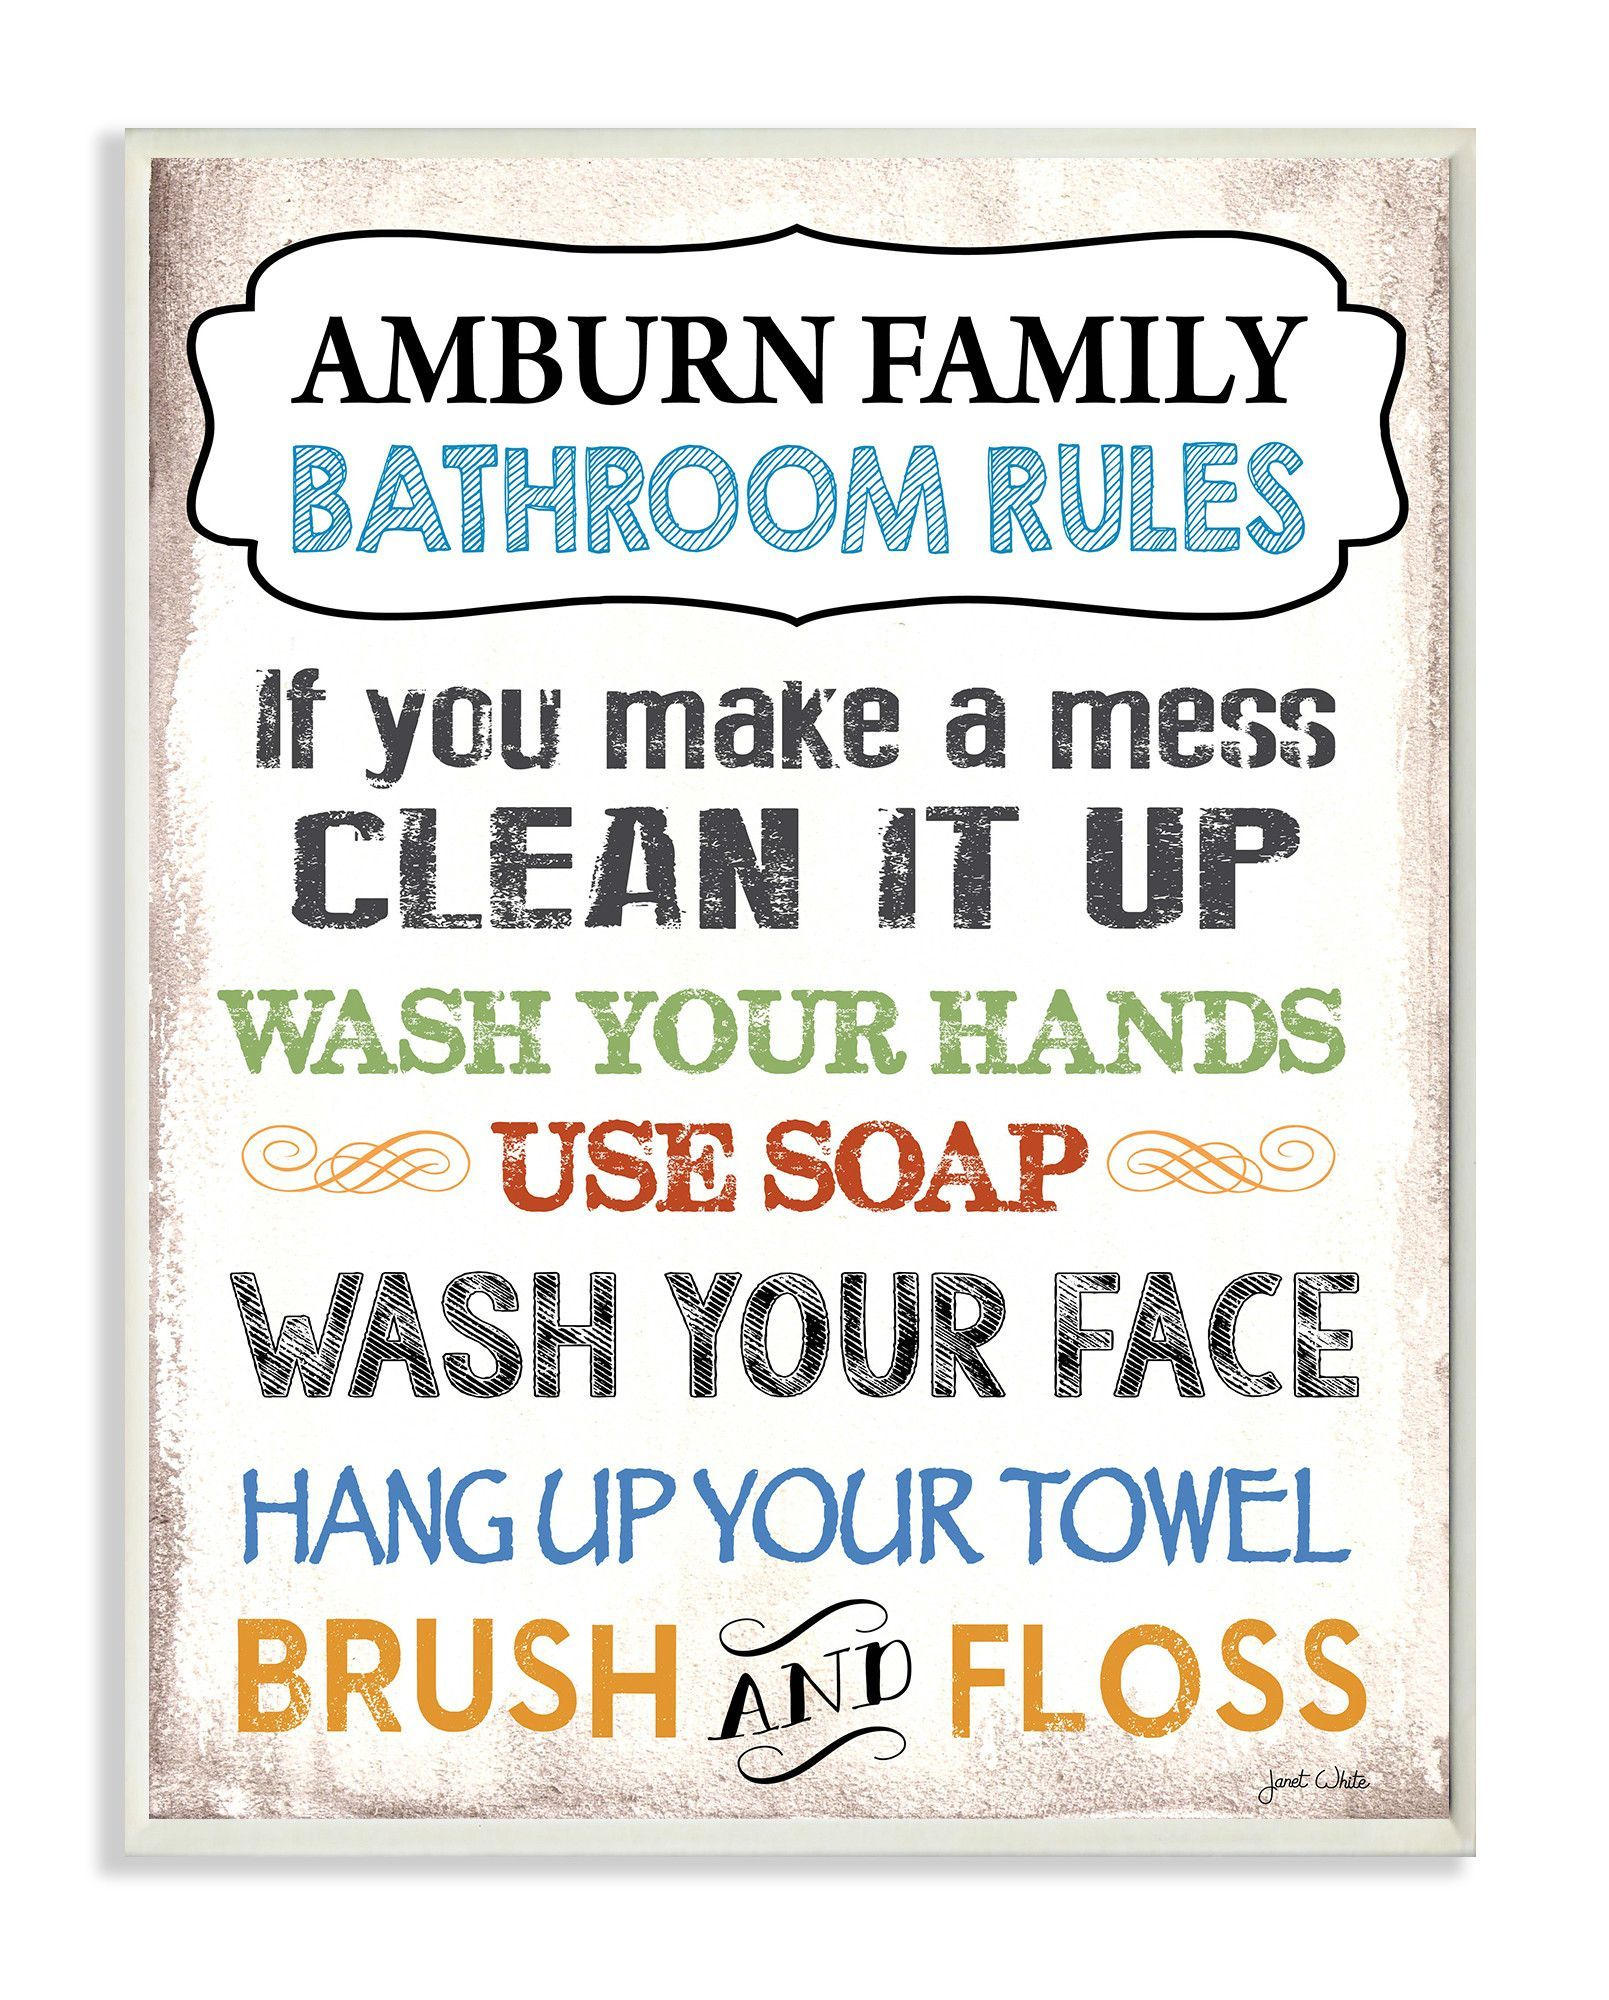 Personalized Bathroom Rules Rainbow By Janet White Textual Art Plaque Bathroom Rules Personalized Wall Plaques Personalized Bathroom